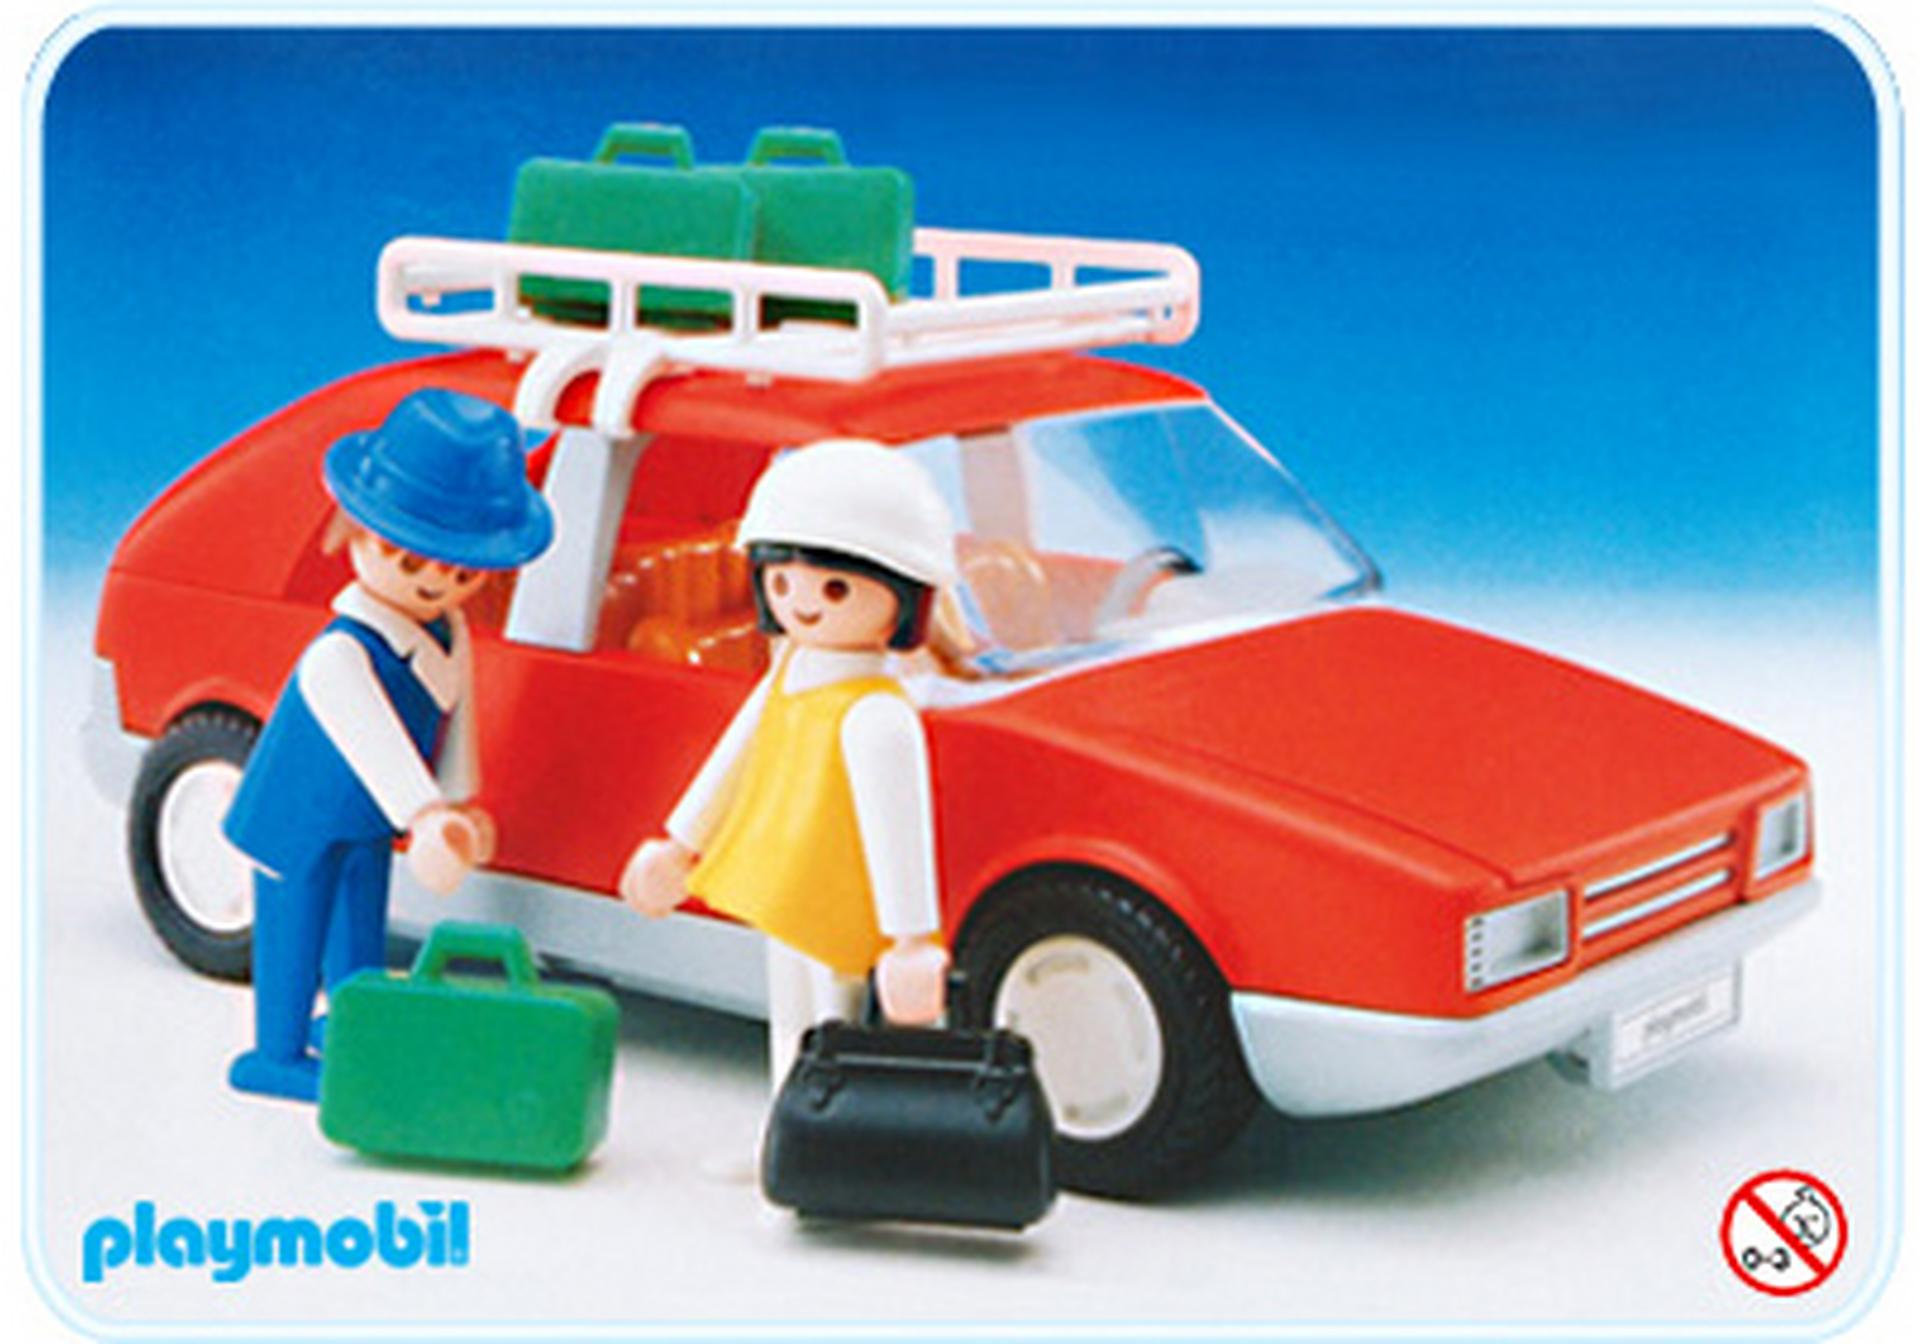 voiture playmobil rouge id e d 39 image de voiture. Black Bedroom Furniture Sets. Home Design Ideas